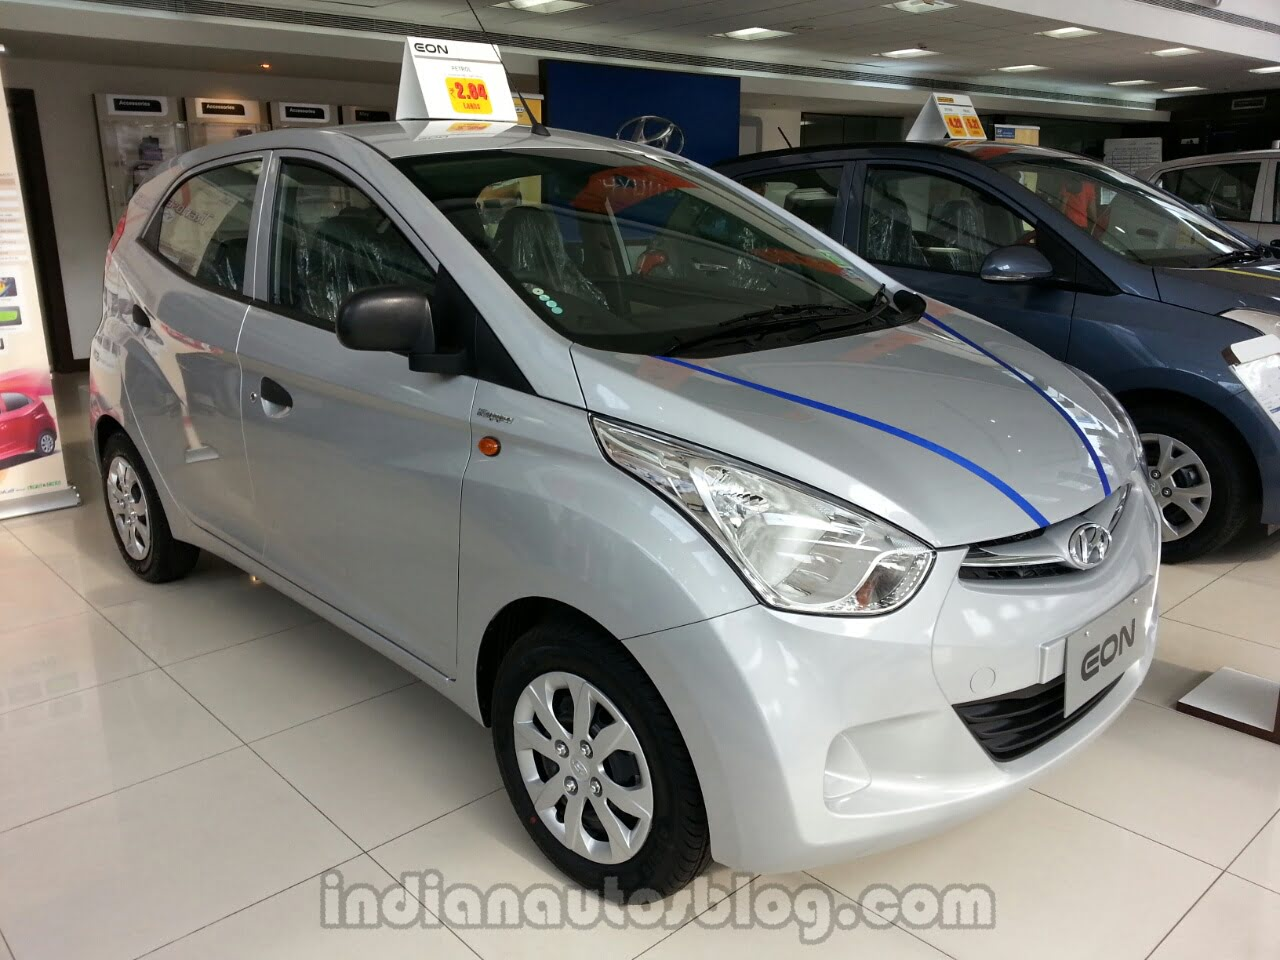 Suzuki Car Dealership >> Hyundai Eon 1.0 Price, Features, Specs, Variants & Details